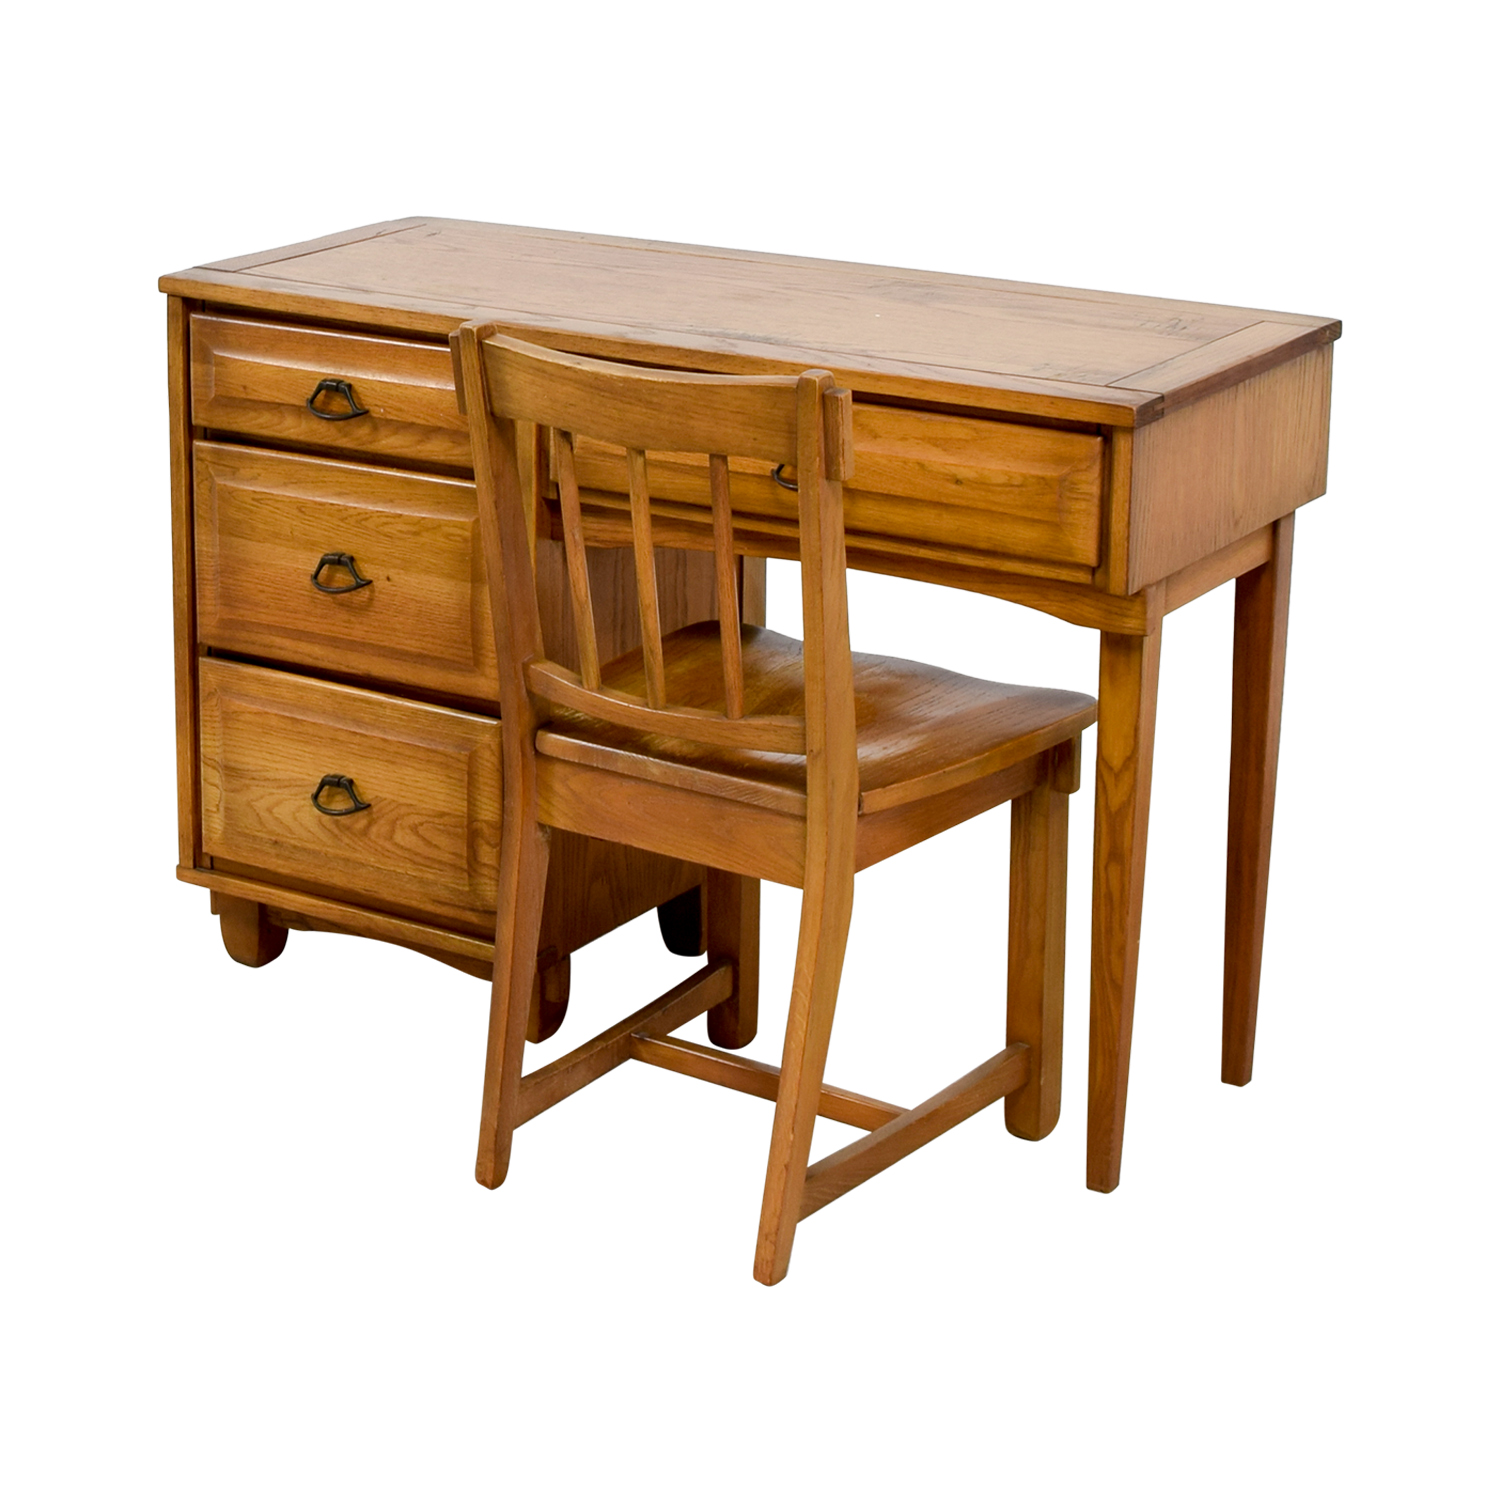 89 OFF Vintage Mid Century Oak Desk with Chair Tables